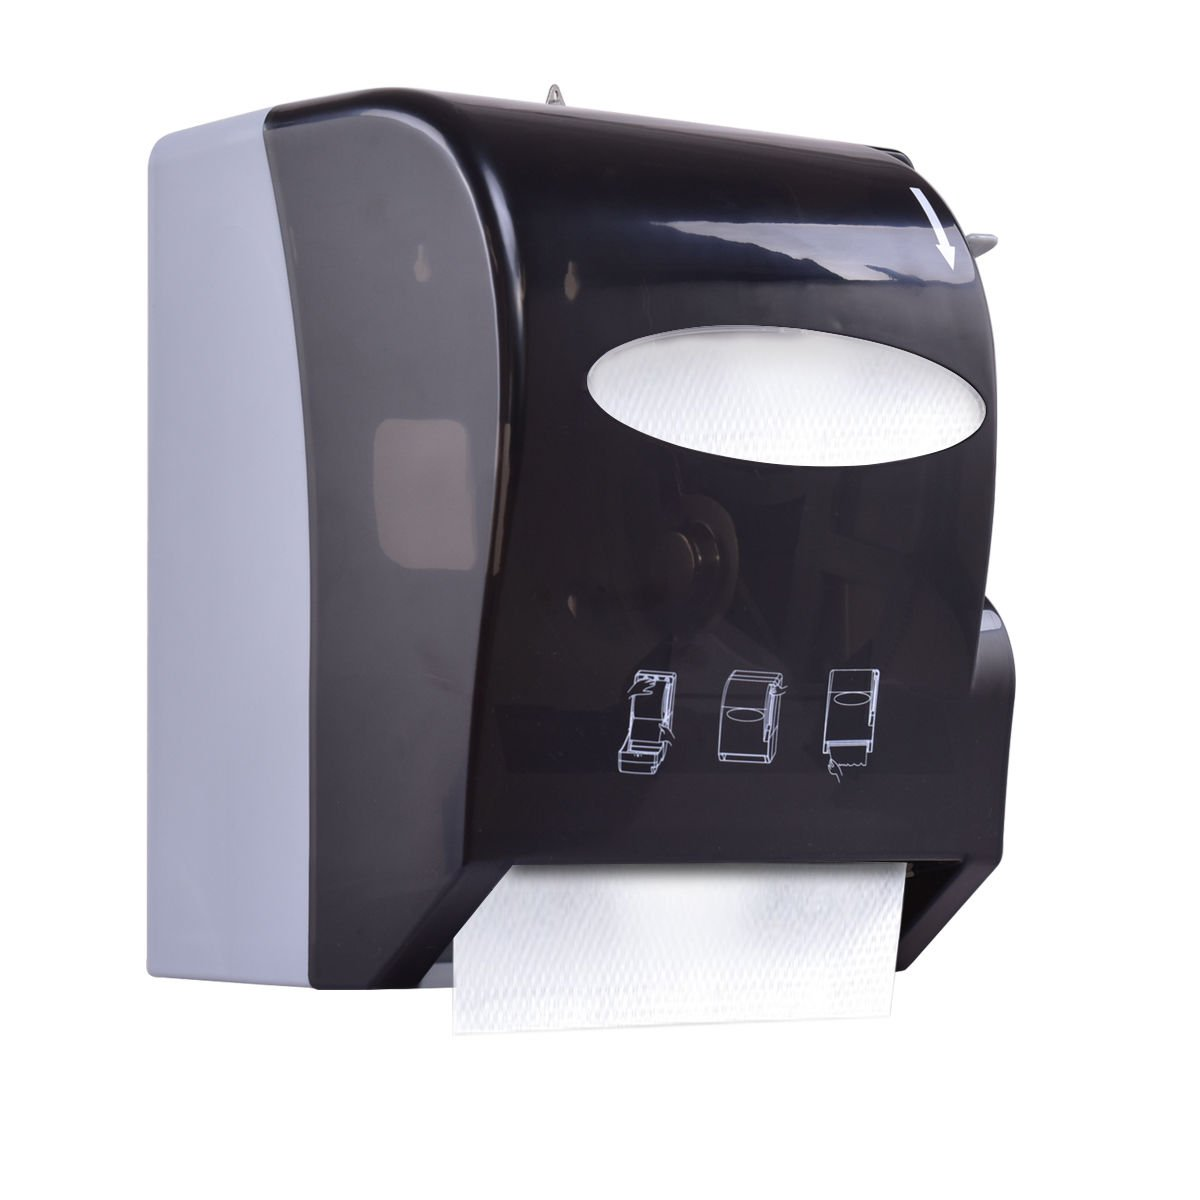 Costway Lever Roll Paper Towel Dispenser Wall Mount Heavy Duty (Black)